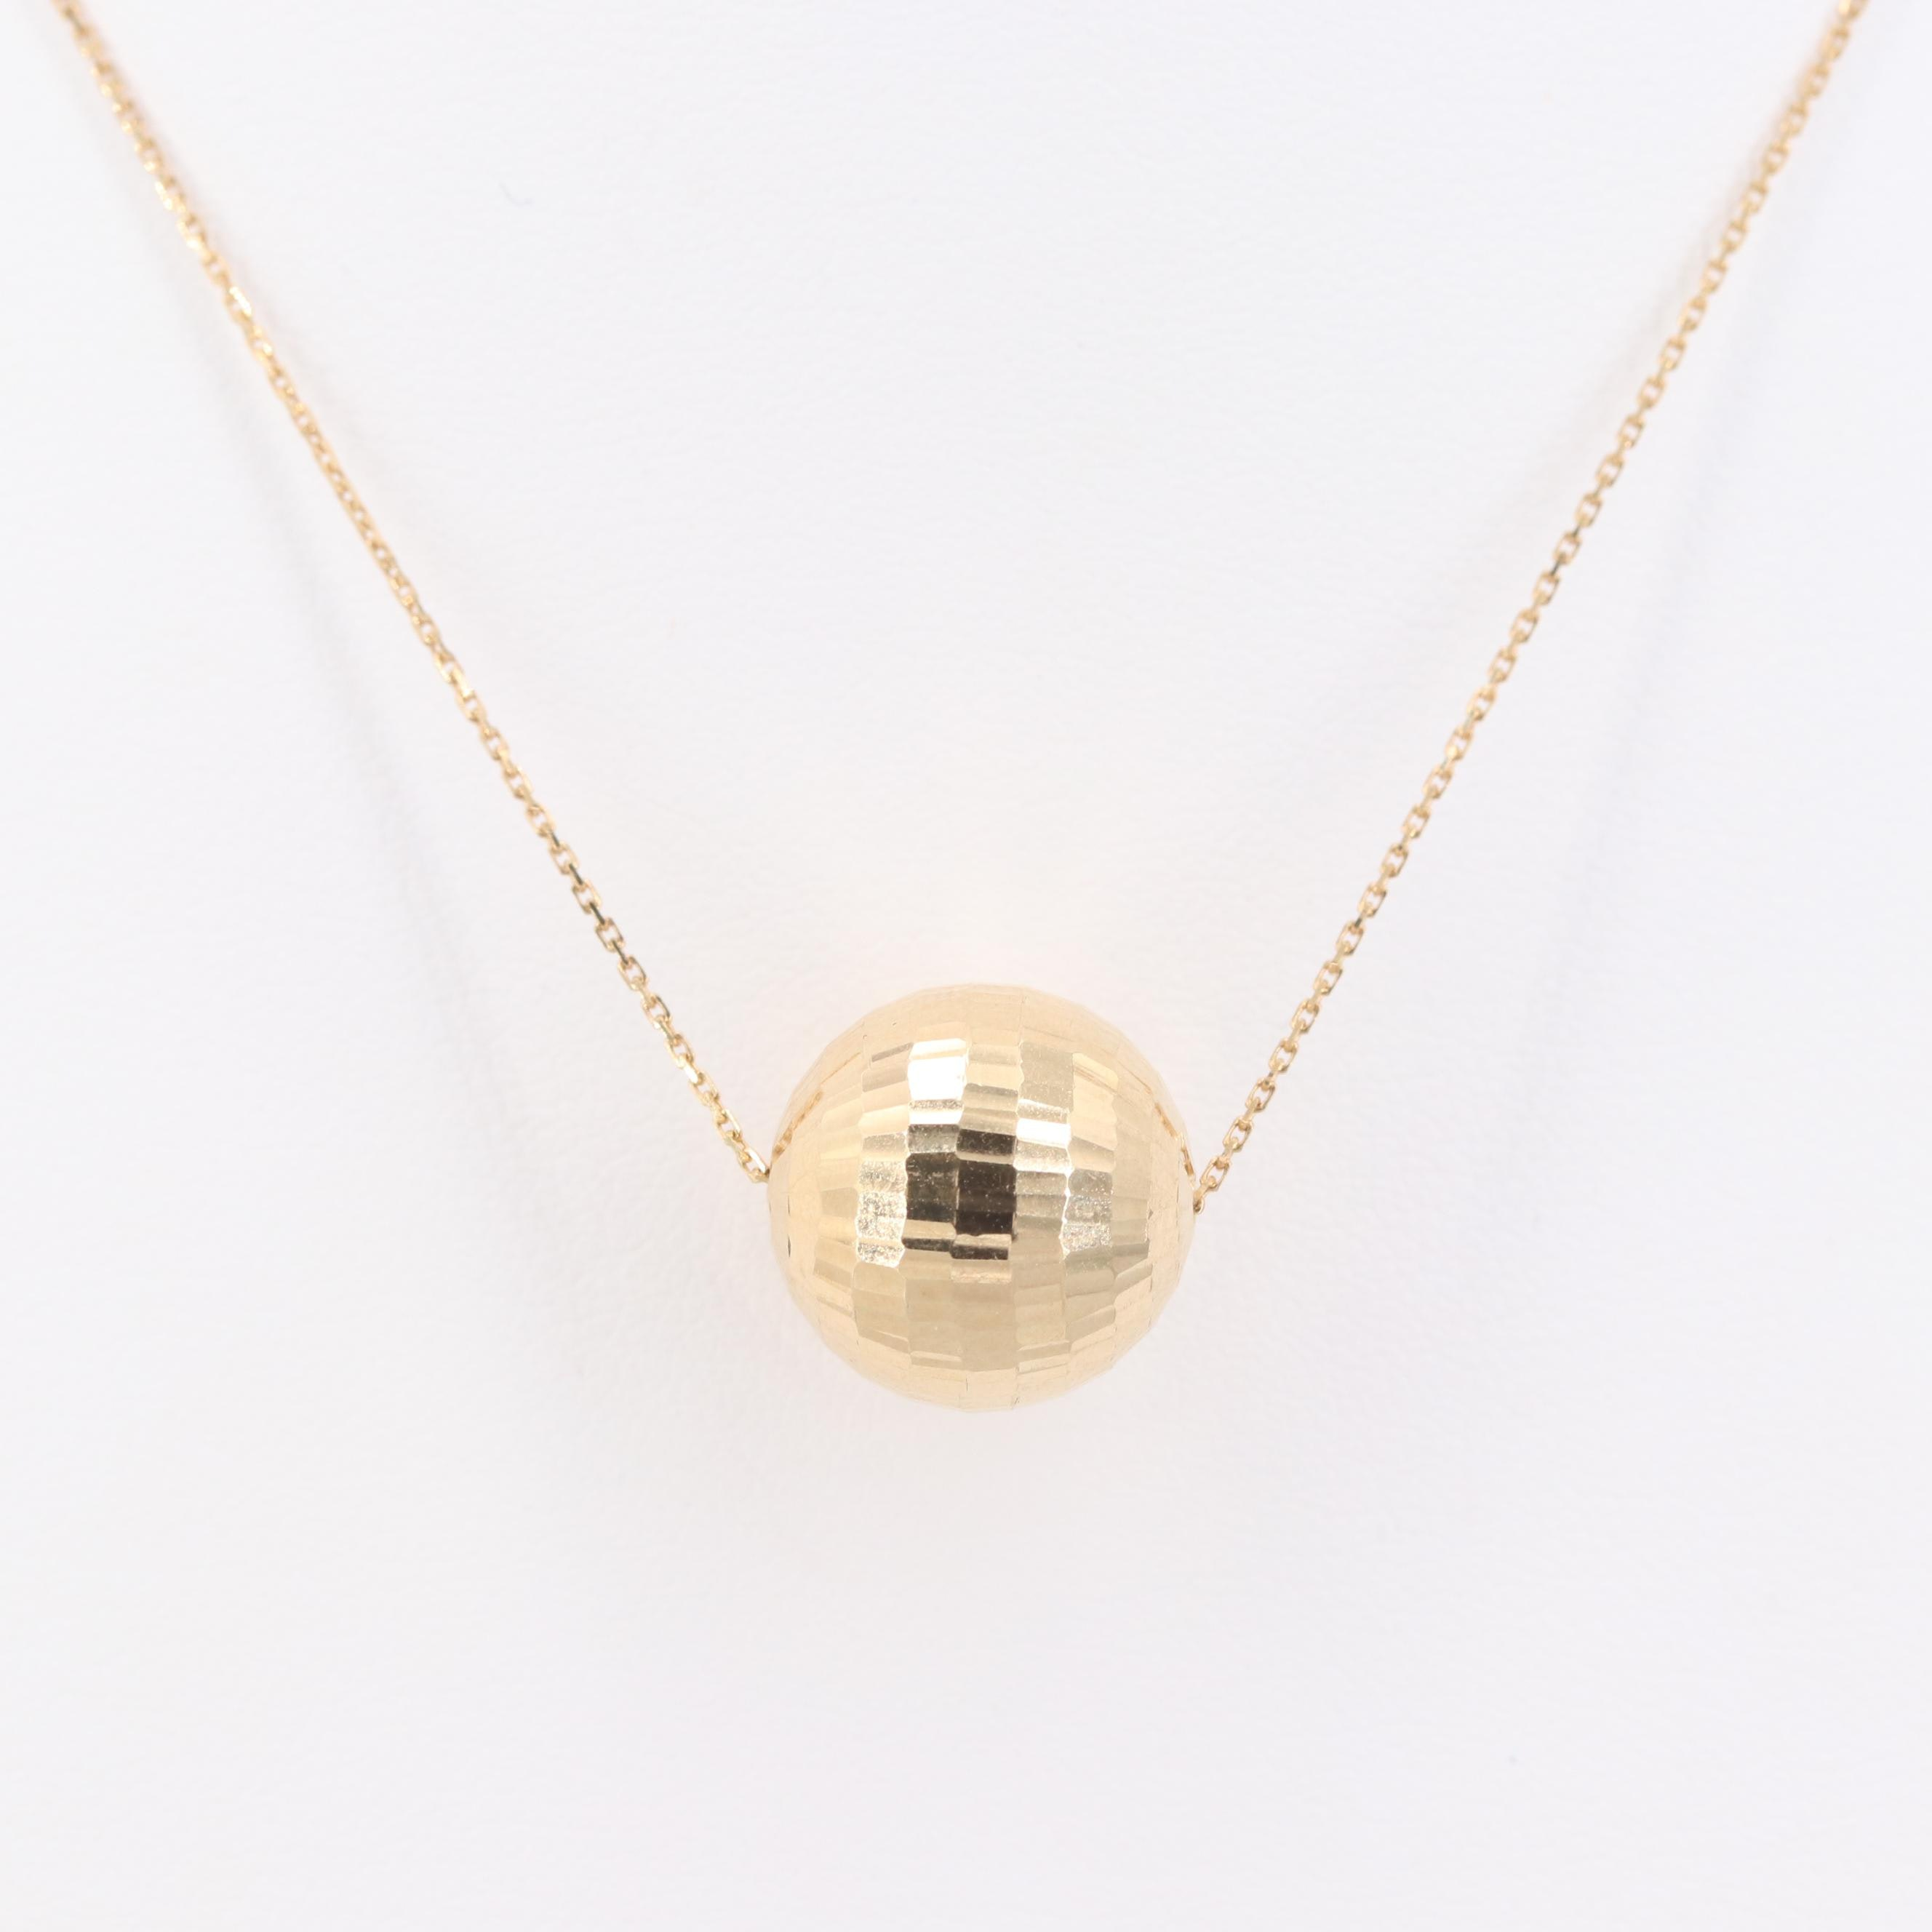 14K Yellow Gold Pendant Necklace